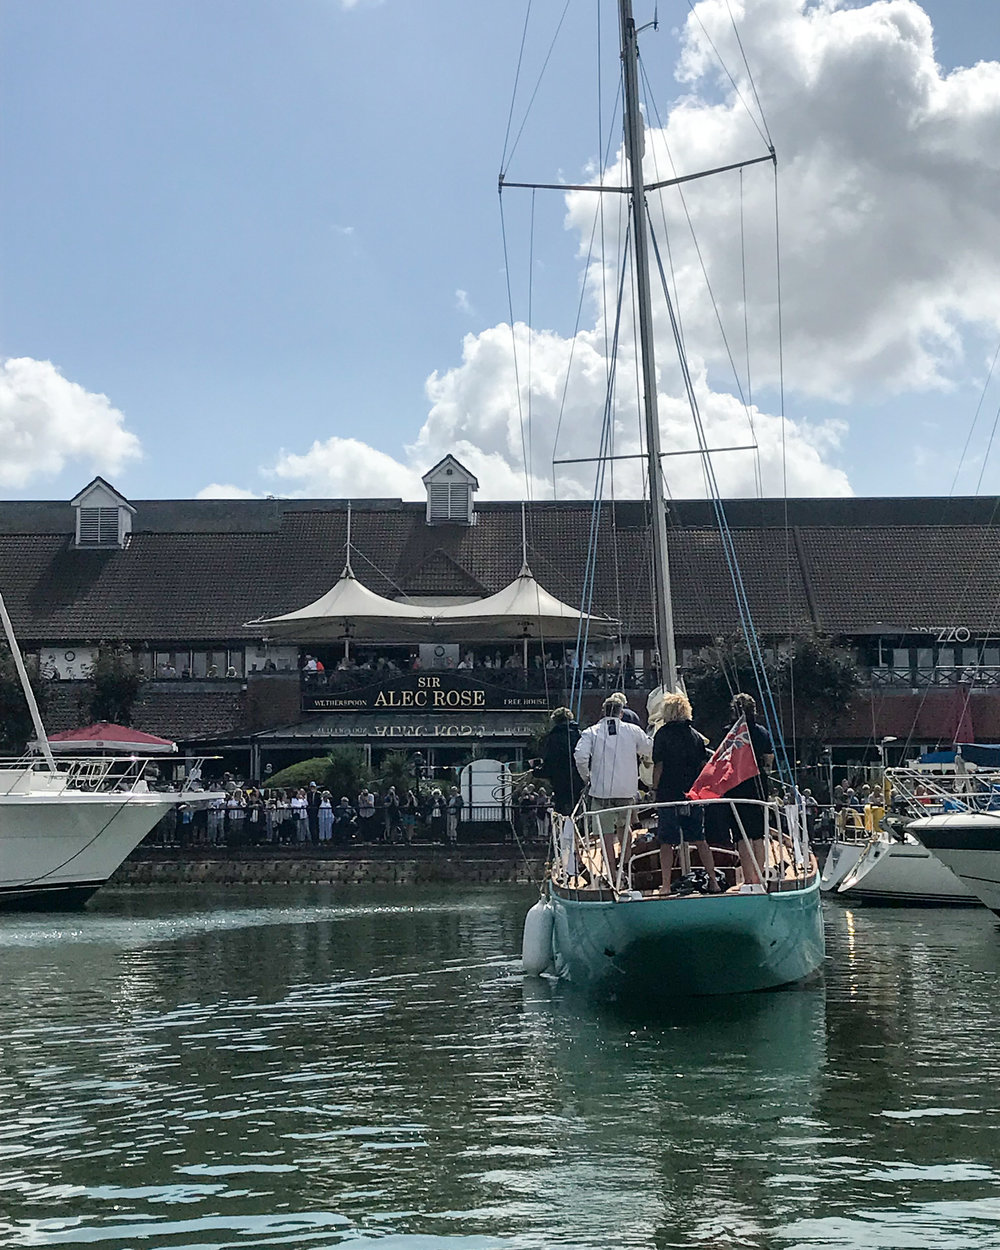 Lively Lady returns to Port Solent